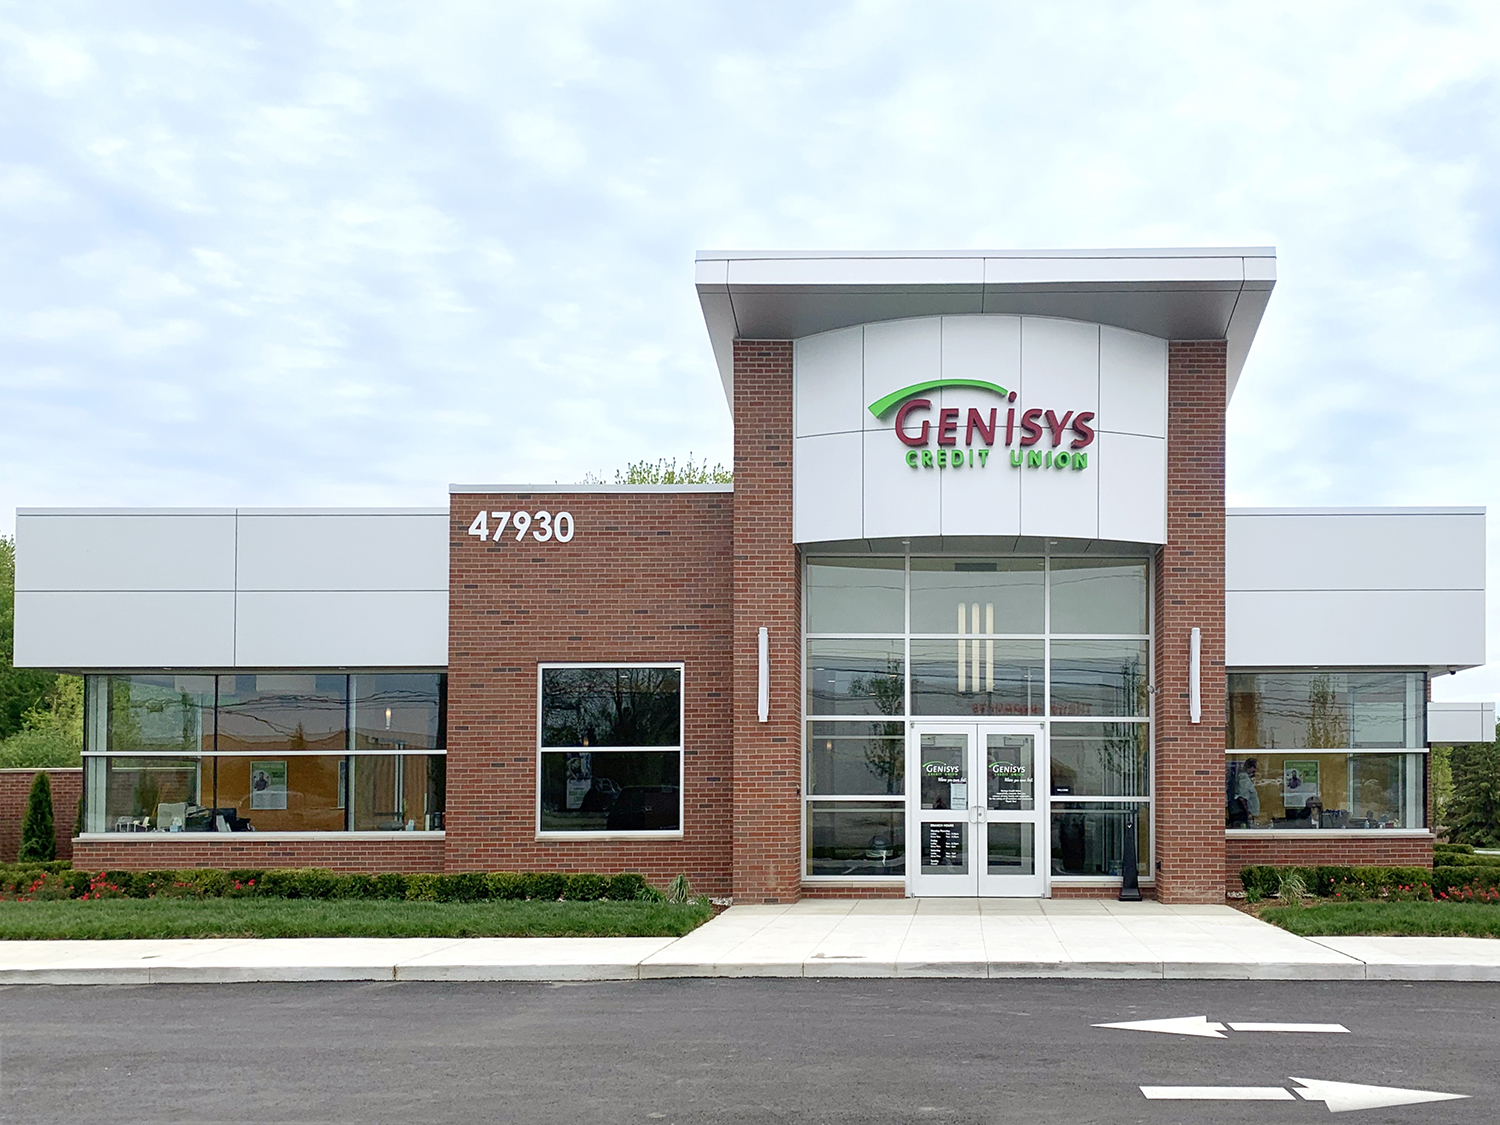 Genisys Credit Union in Chesterfield, MI